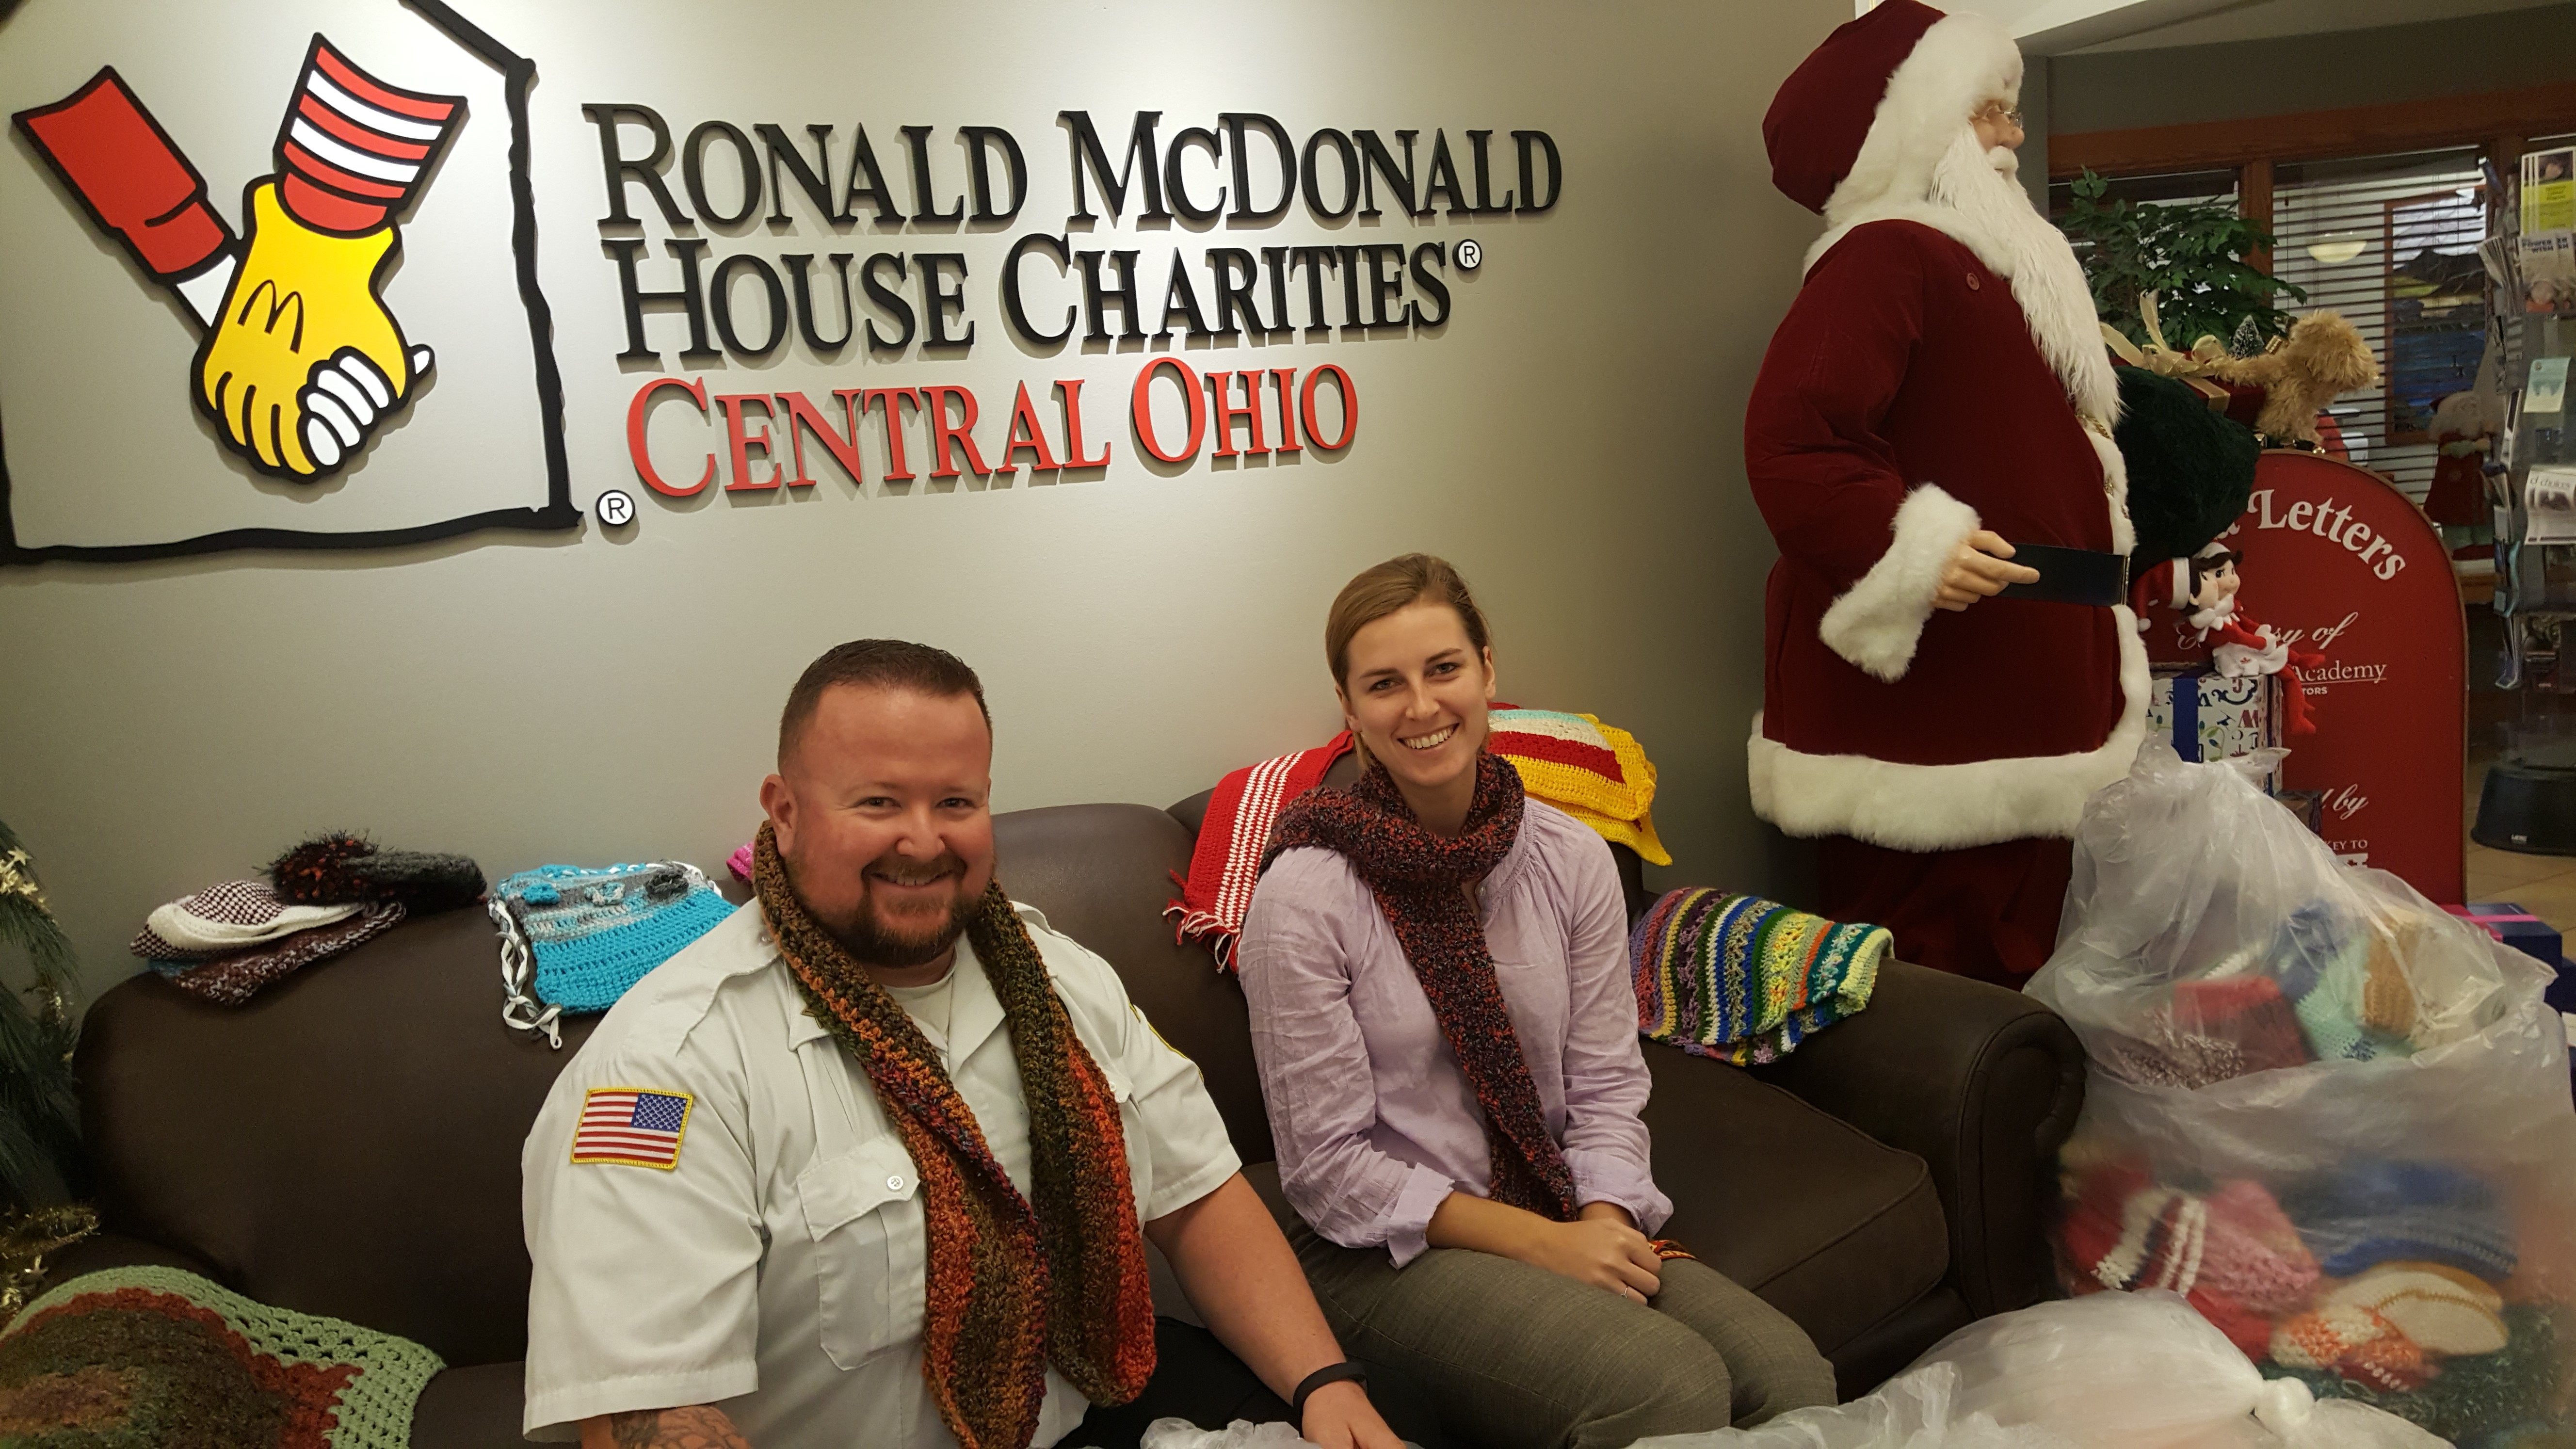 NCI Donates Winter Clothing Items to Ronald McDonald House